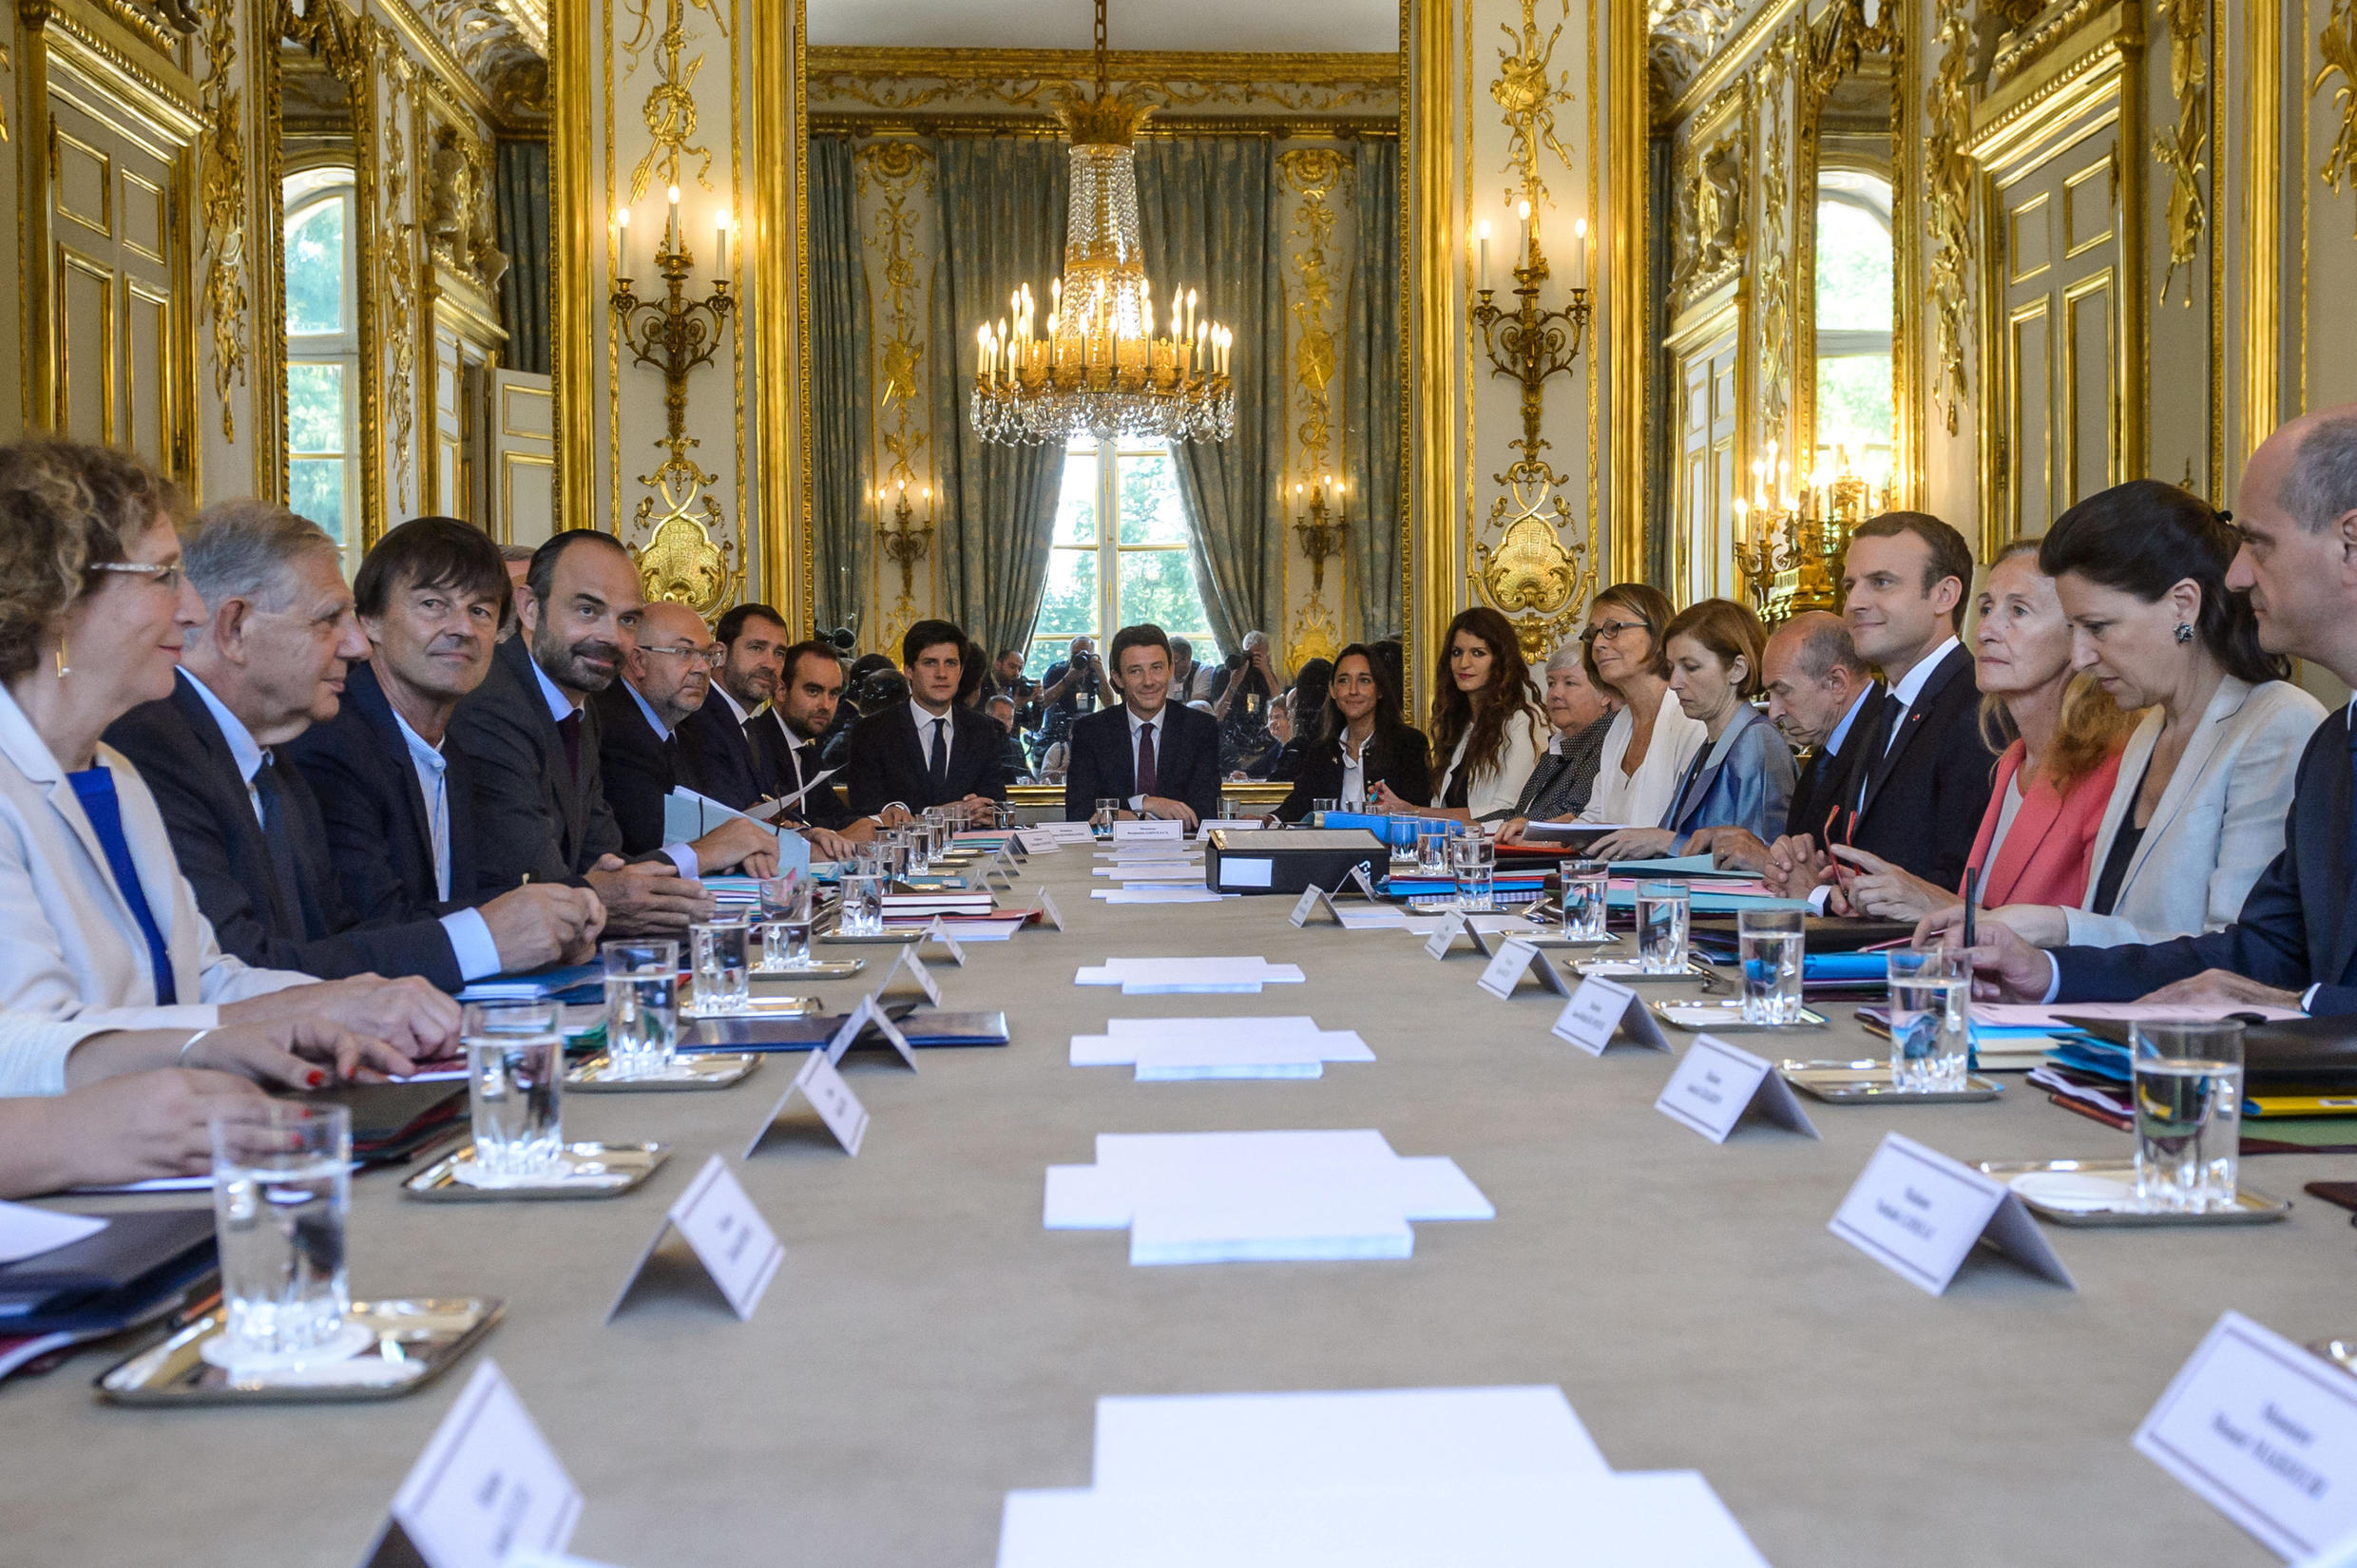 French President Emmanuel Macron (C) attends the weekly cabinet meeting with new government members after a reshuffle at the Elysee Palace in Paris, France, June 22, 2017.